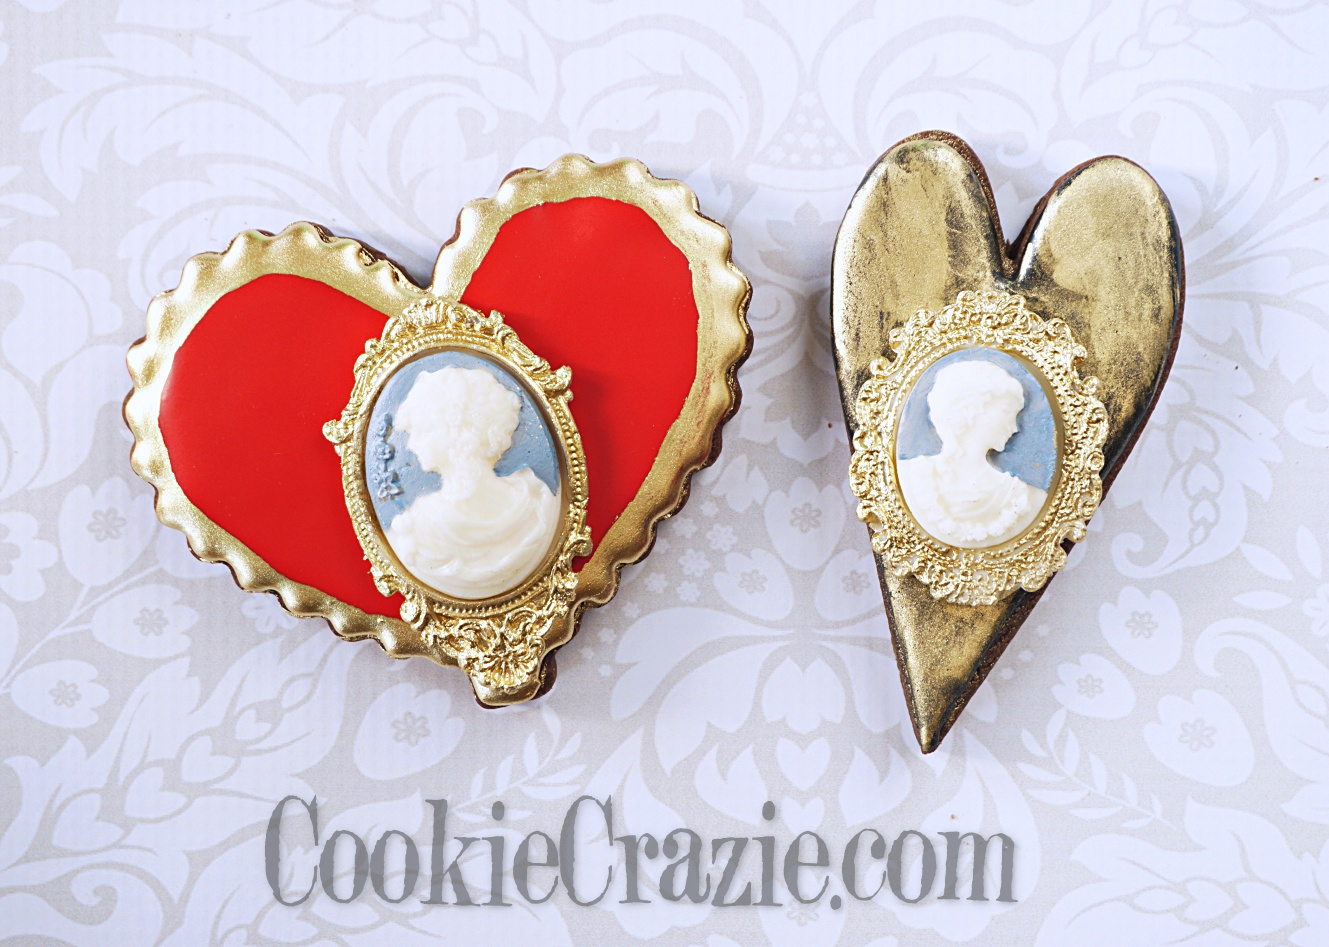 Valentine Cameo Decorated Sugar Cookies YouTube video  HERE